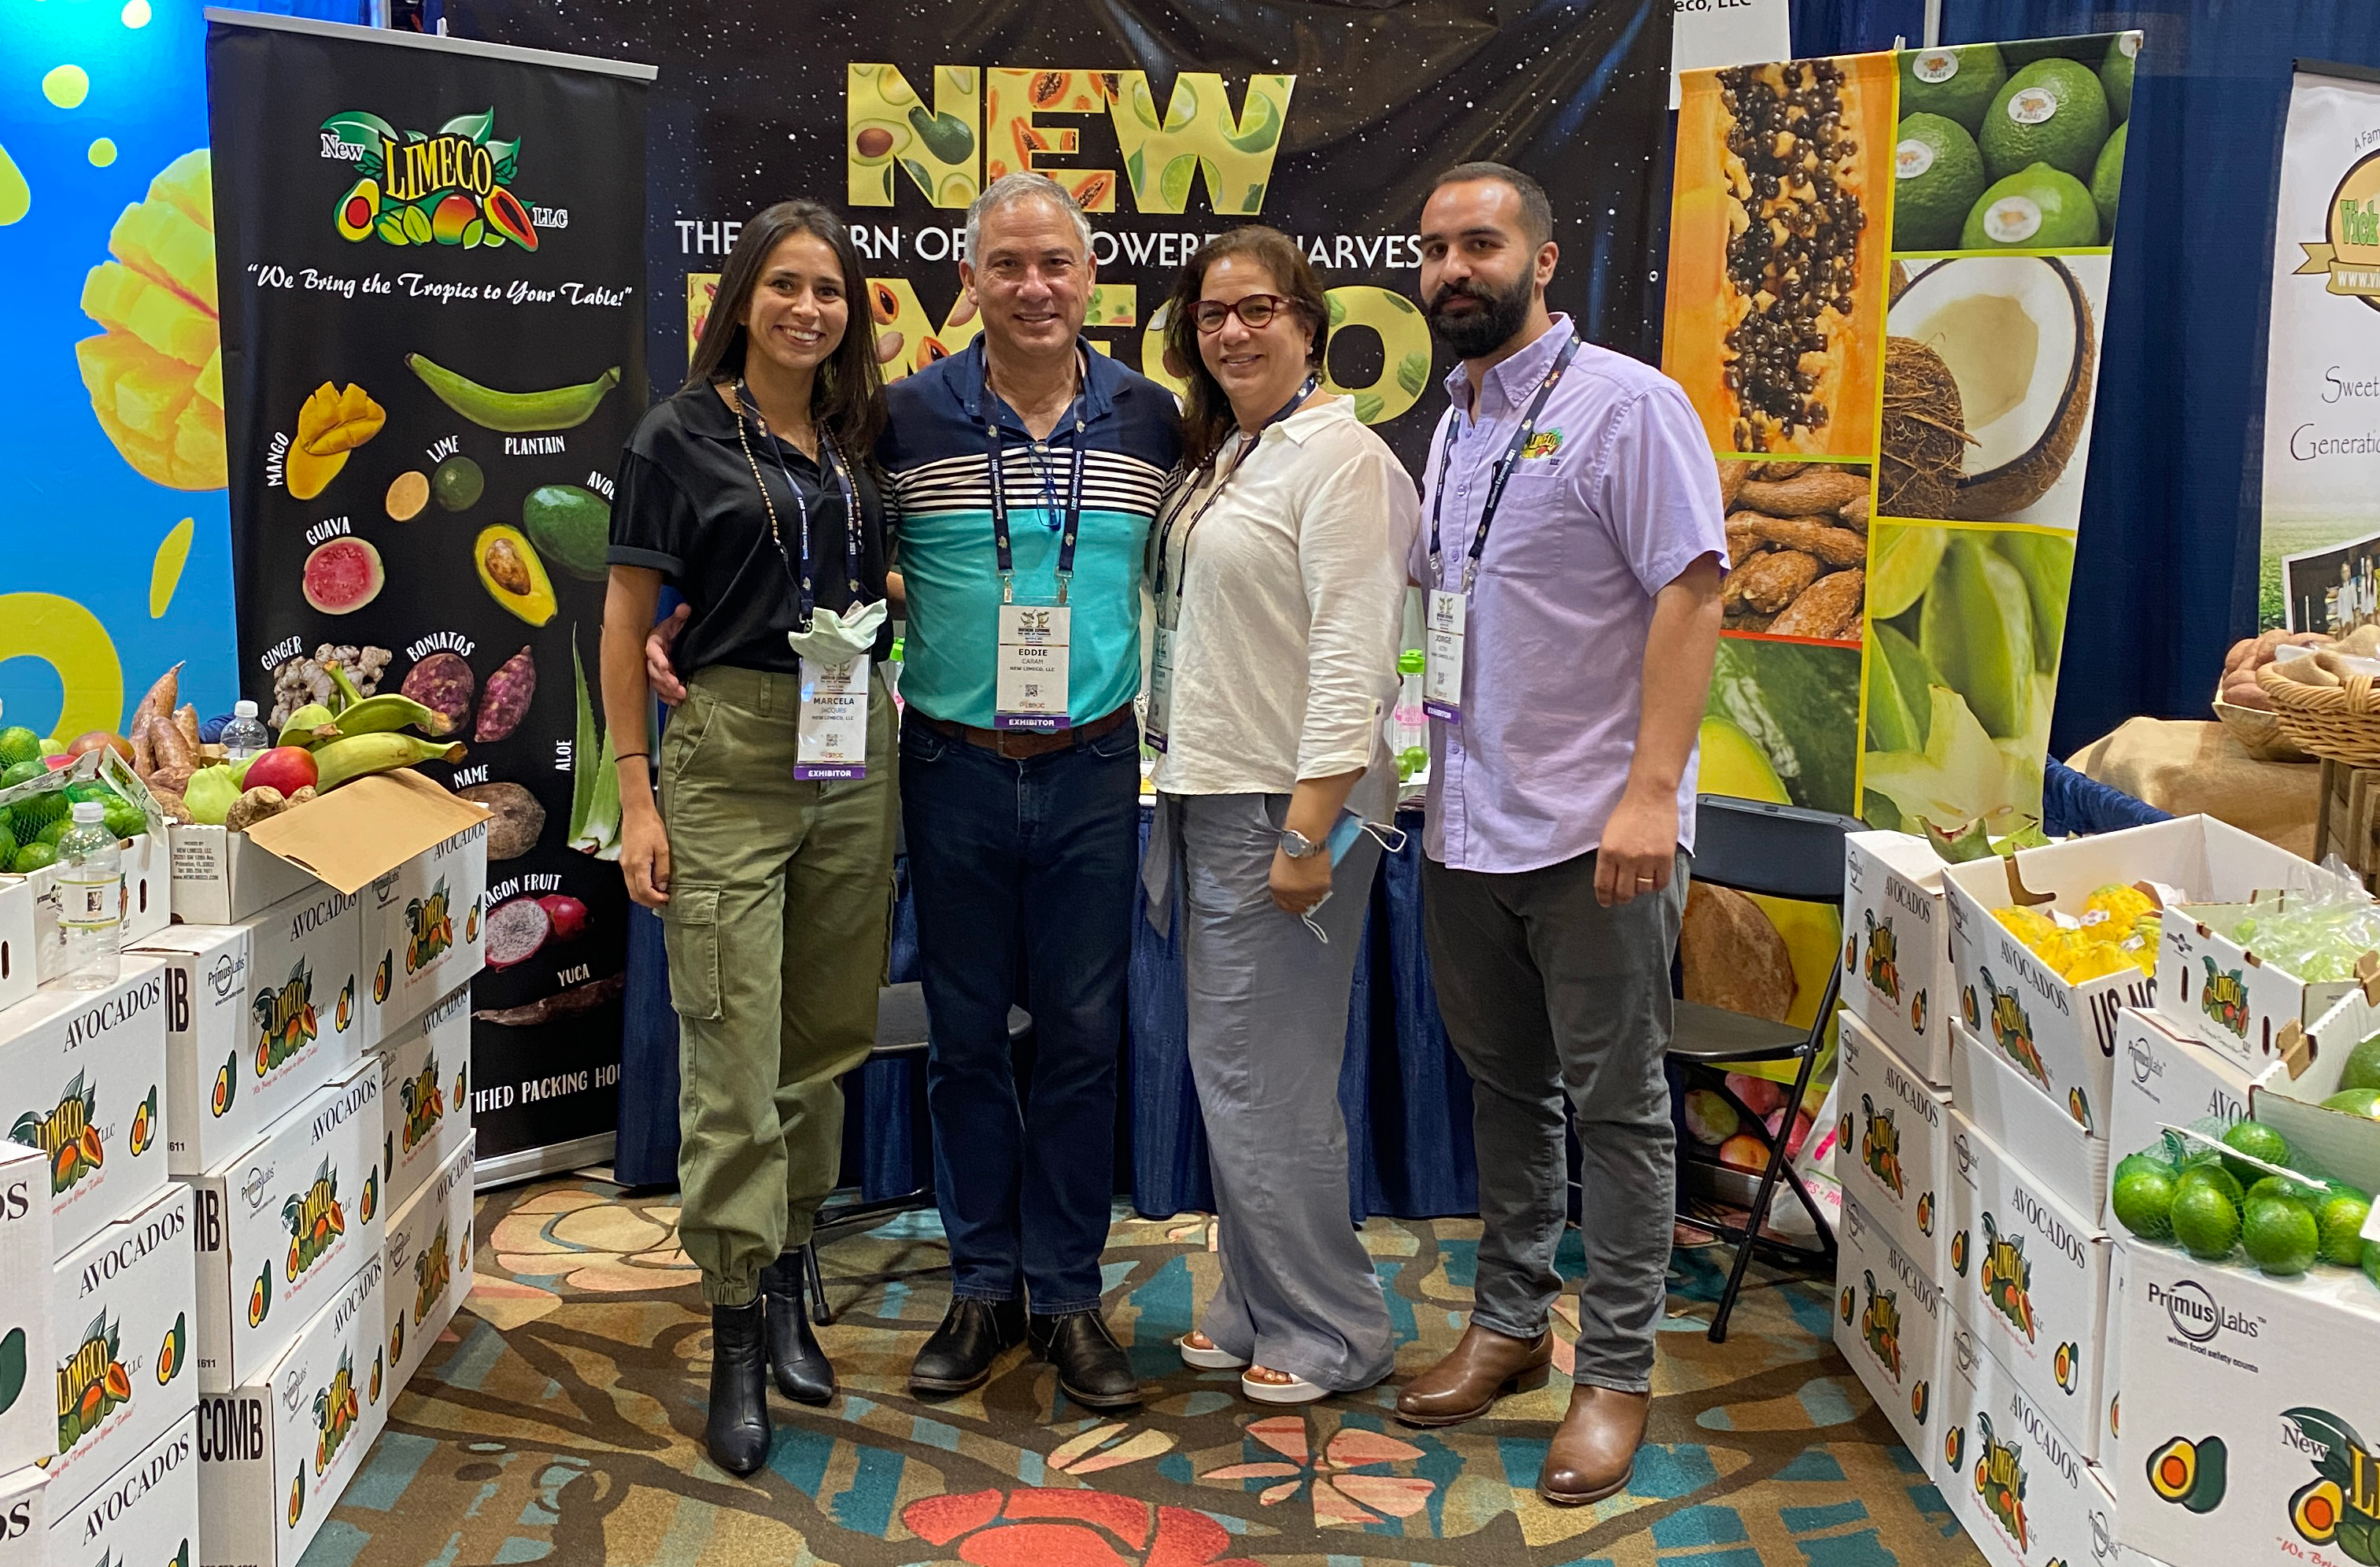 Marcela Jacques, Eddie Caram, Vivian Caram and Jorge Leon of New Limeco.